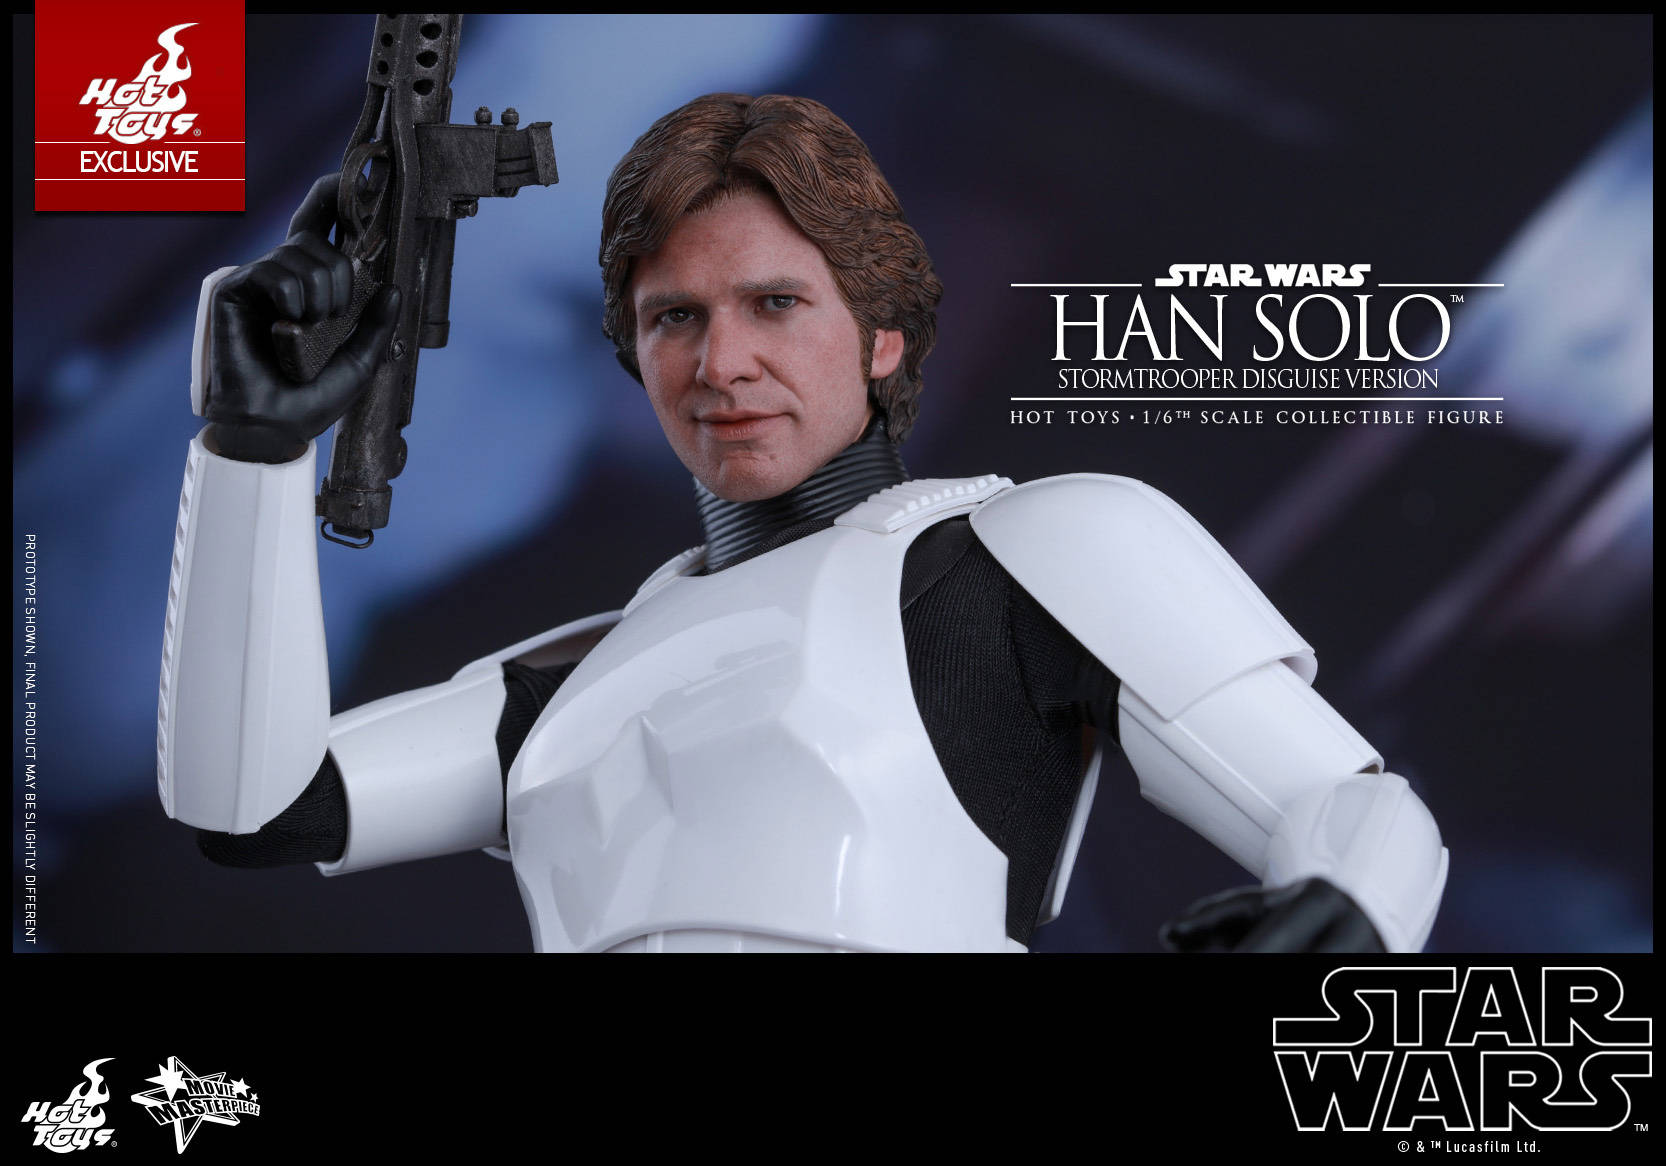 Hot-Toys---Star-Wars---Han-Solo-(Stormtrooper-Disguise-Version)-Collectible-Figure PR16